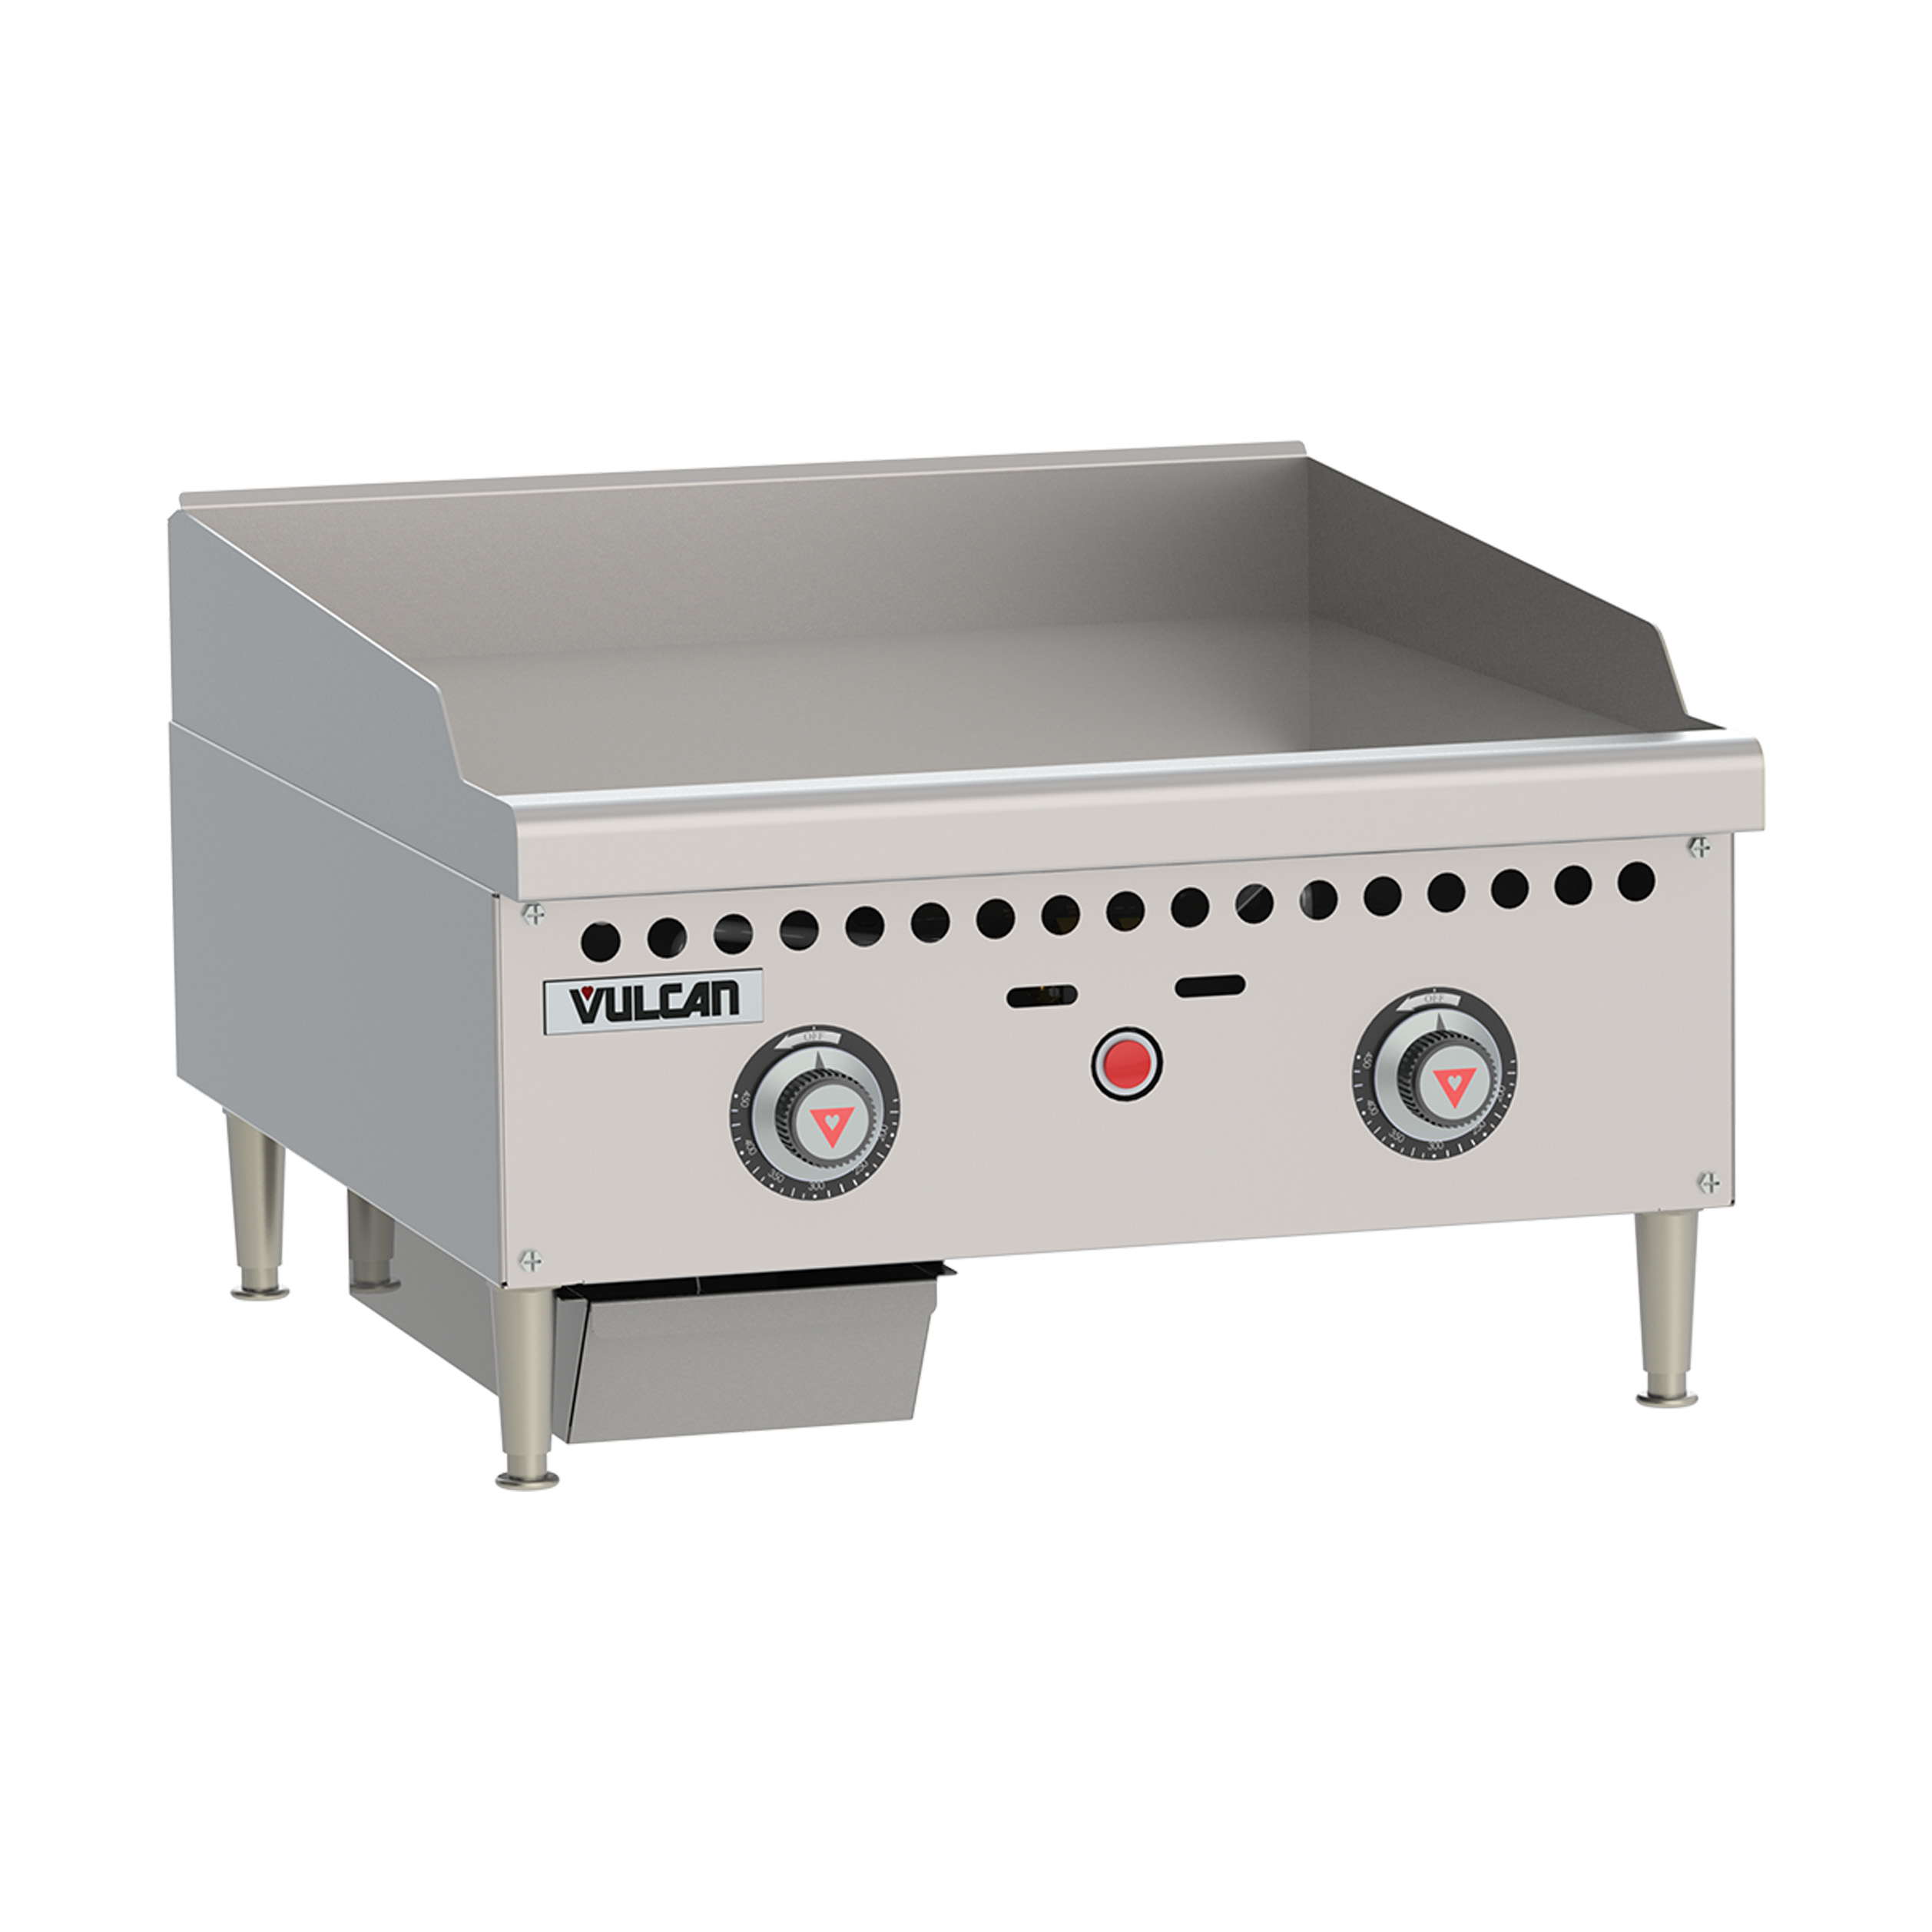 Vulcan VCRG36-T griddle, gas, countertop